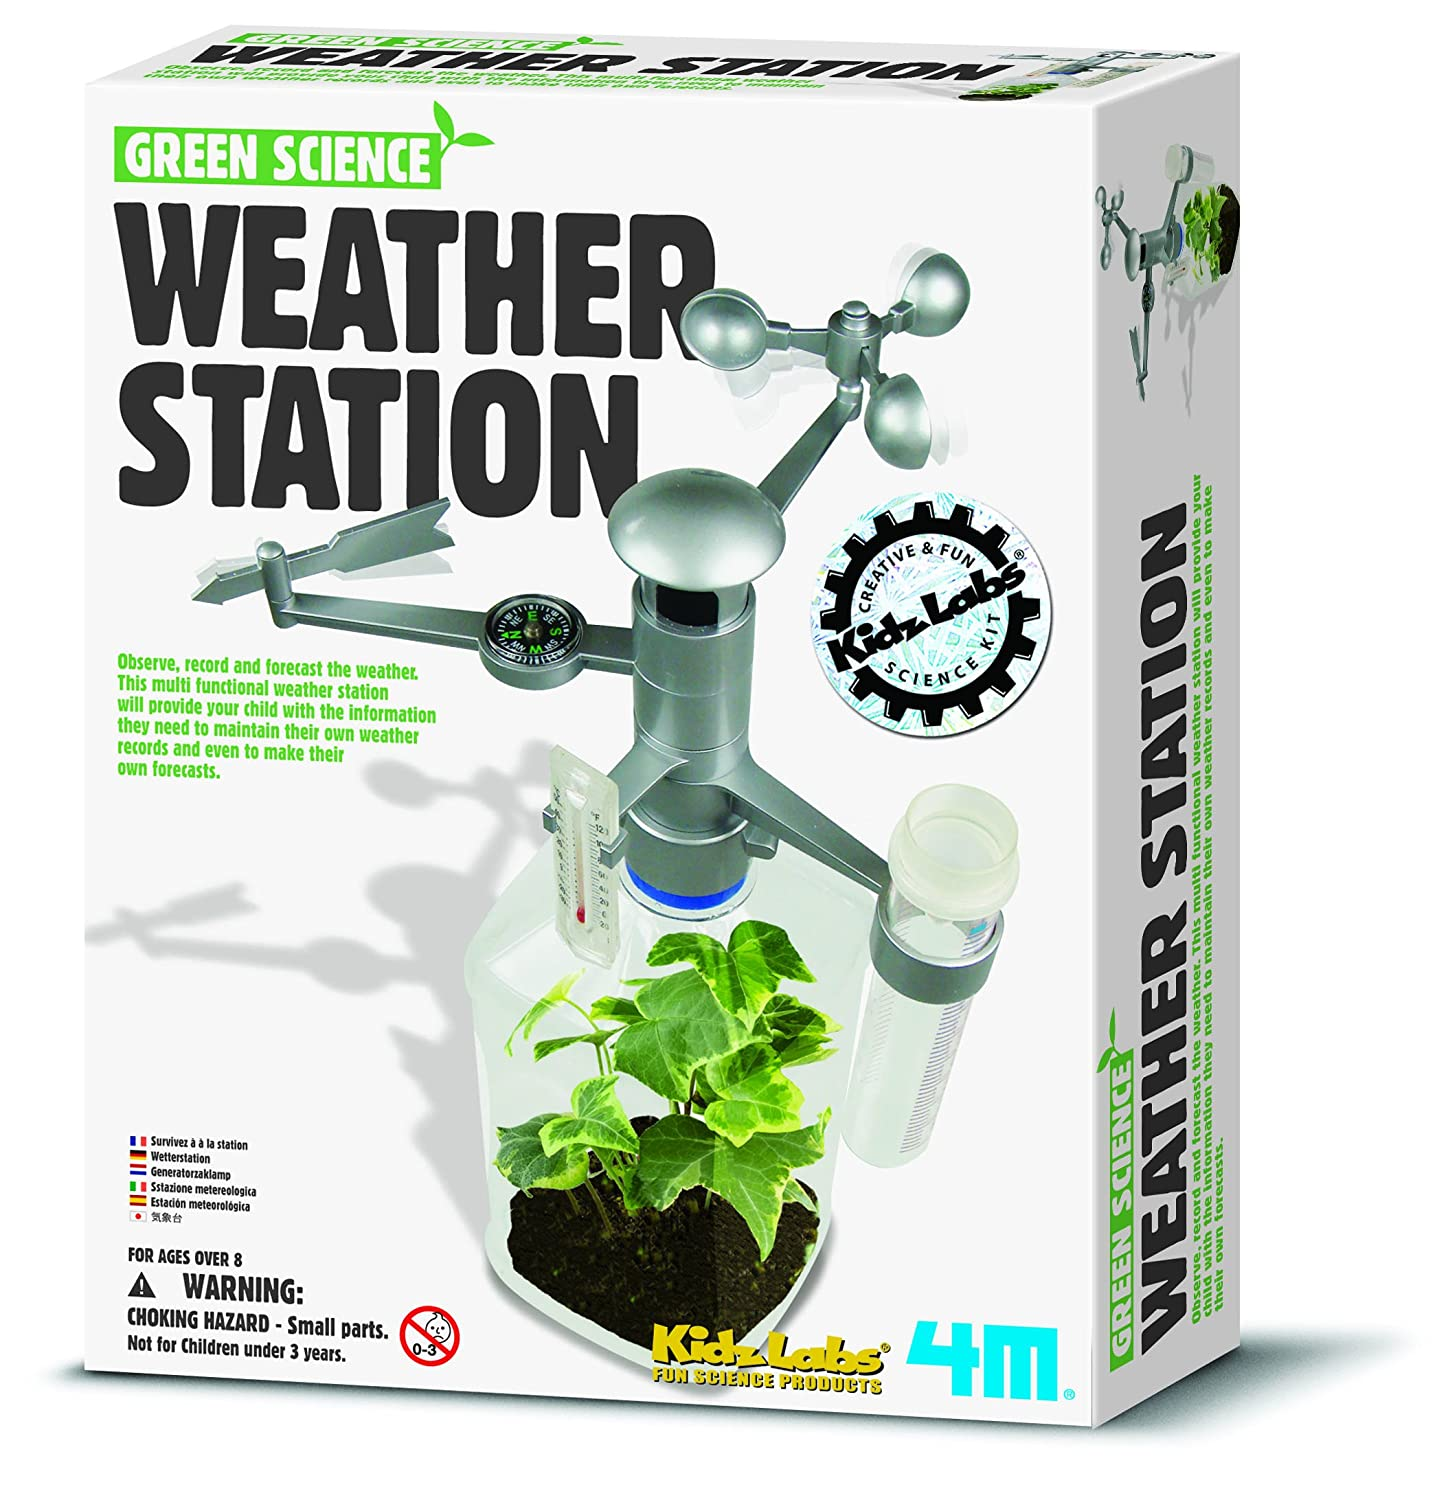 Create Your Own Weather Science Experiments - Easy To Make Science Kit - Educational - Educational Science Present Gift Ideal For Christmas Xmas Stocking Fillers Age 8+ Children Kids Boys Girls Green Science Kit